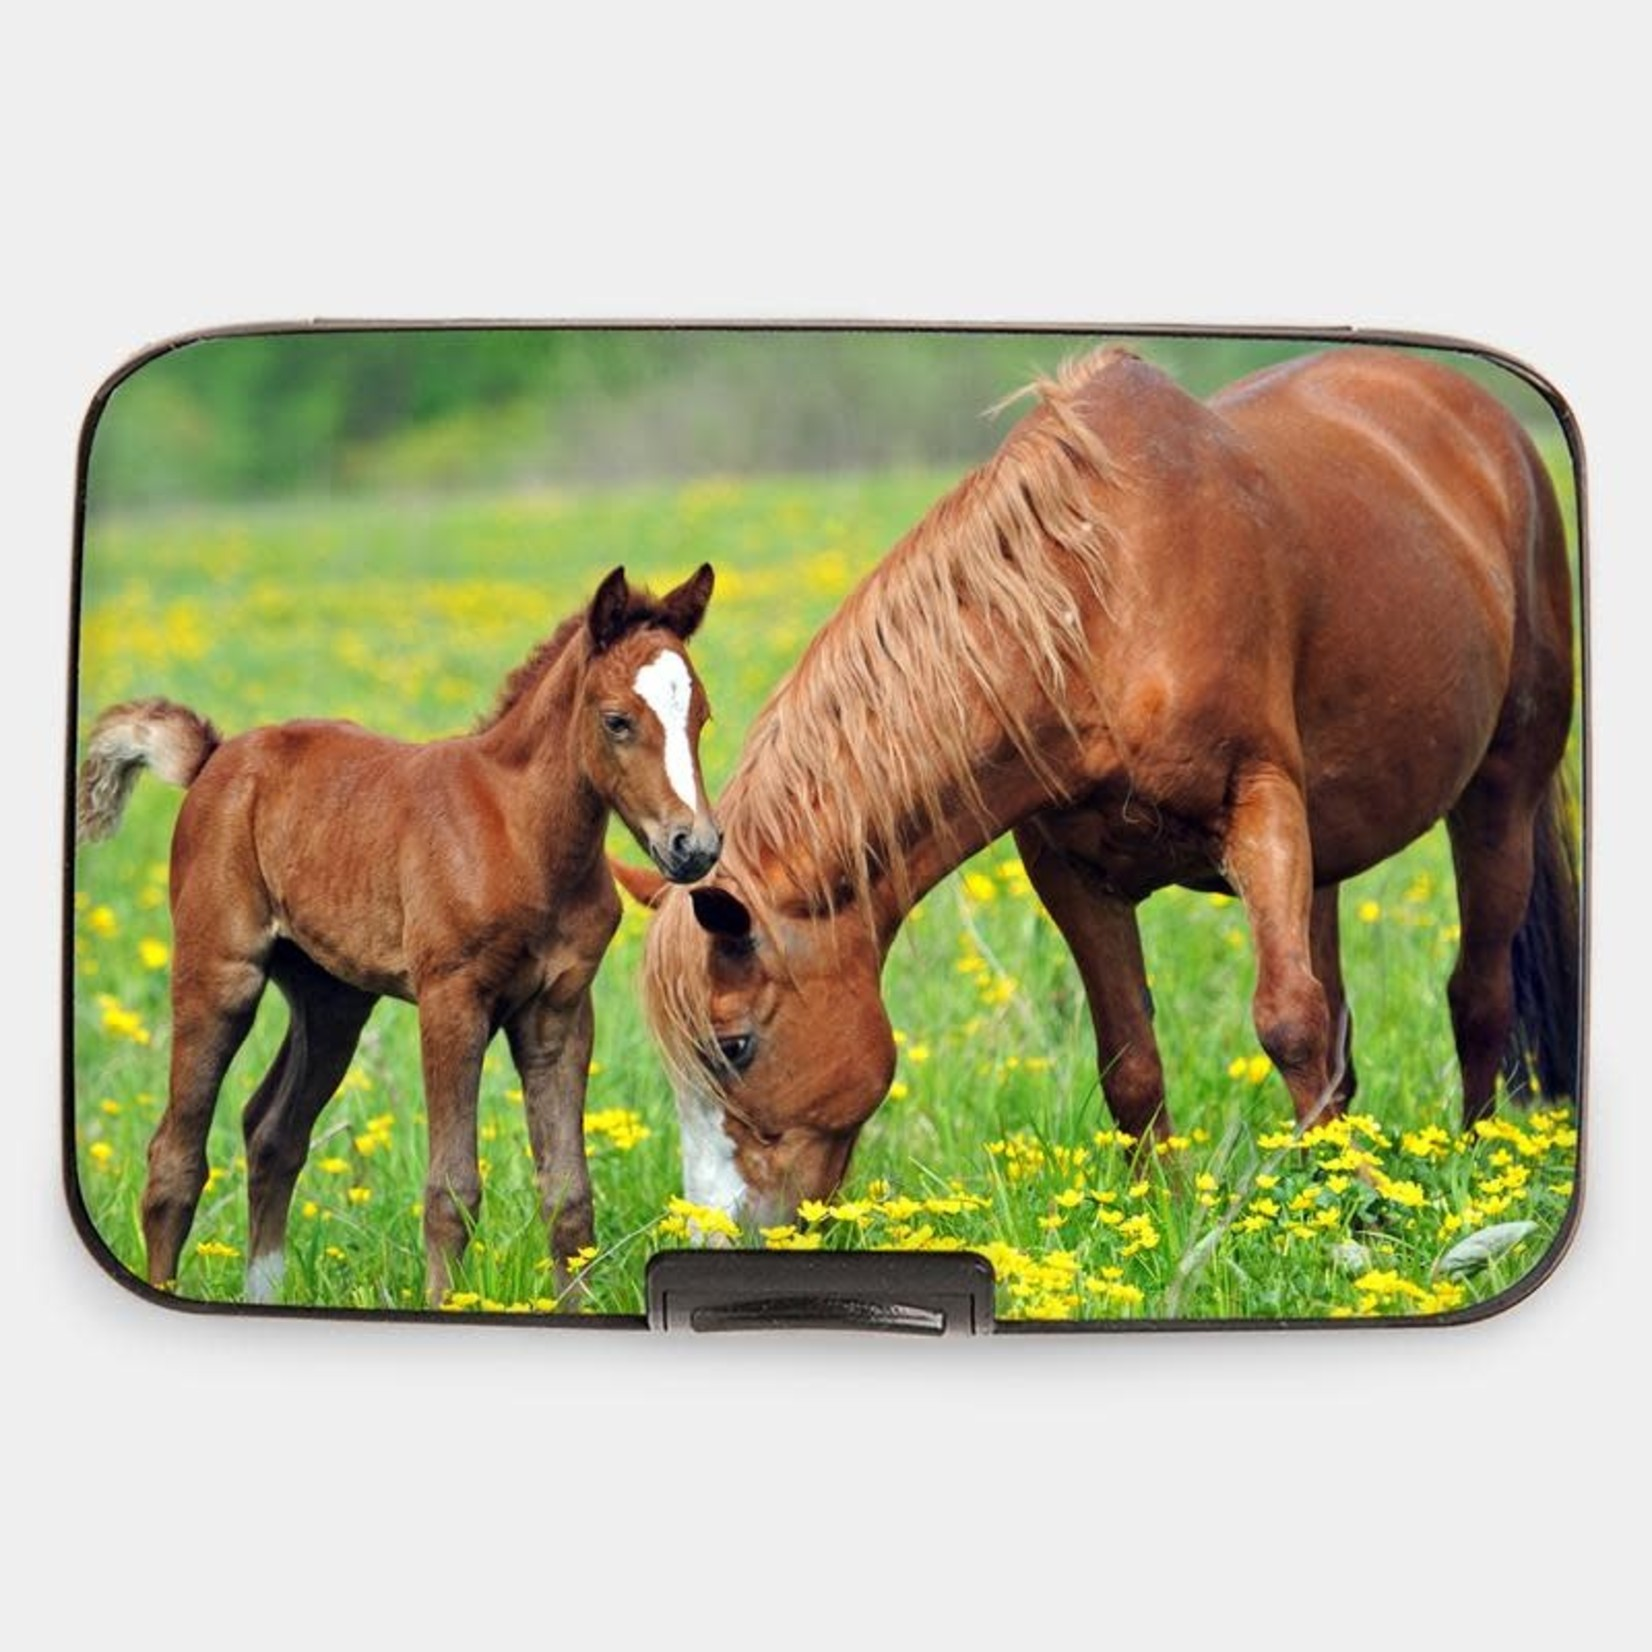 Monarque Armored Wallet - Bay With Foal